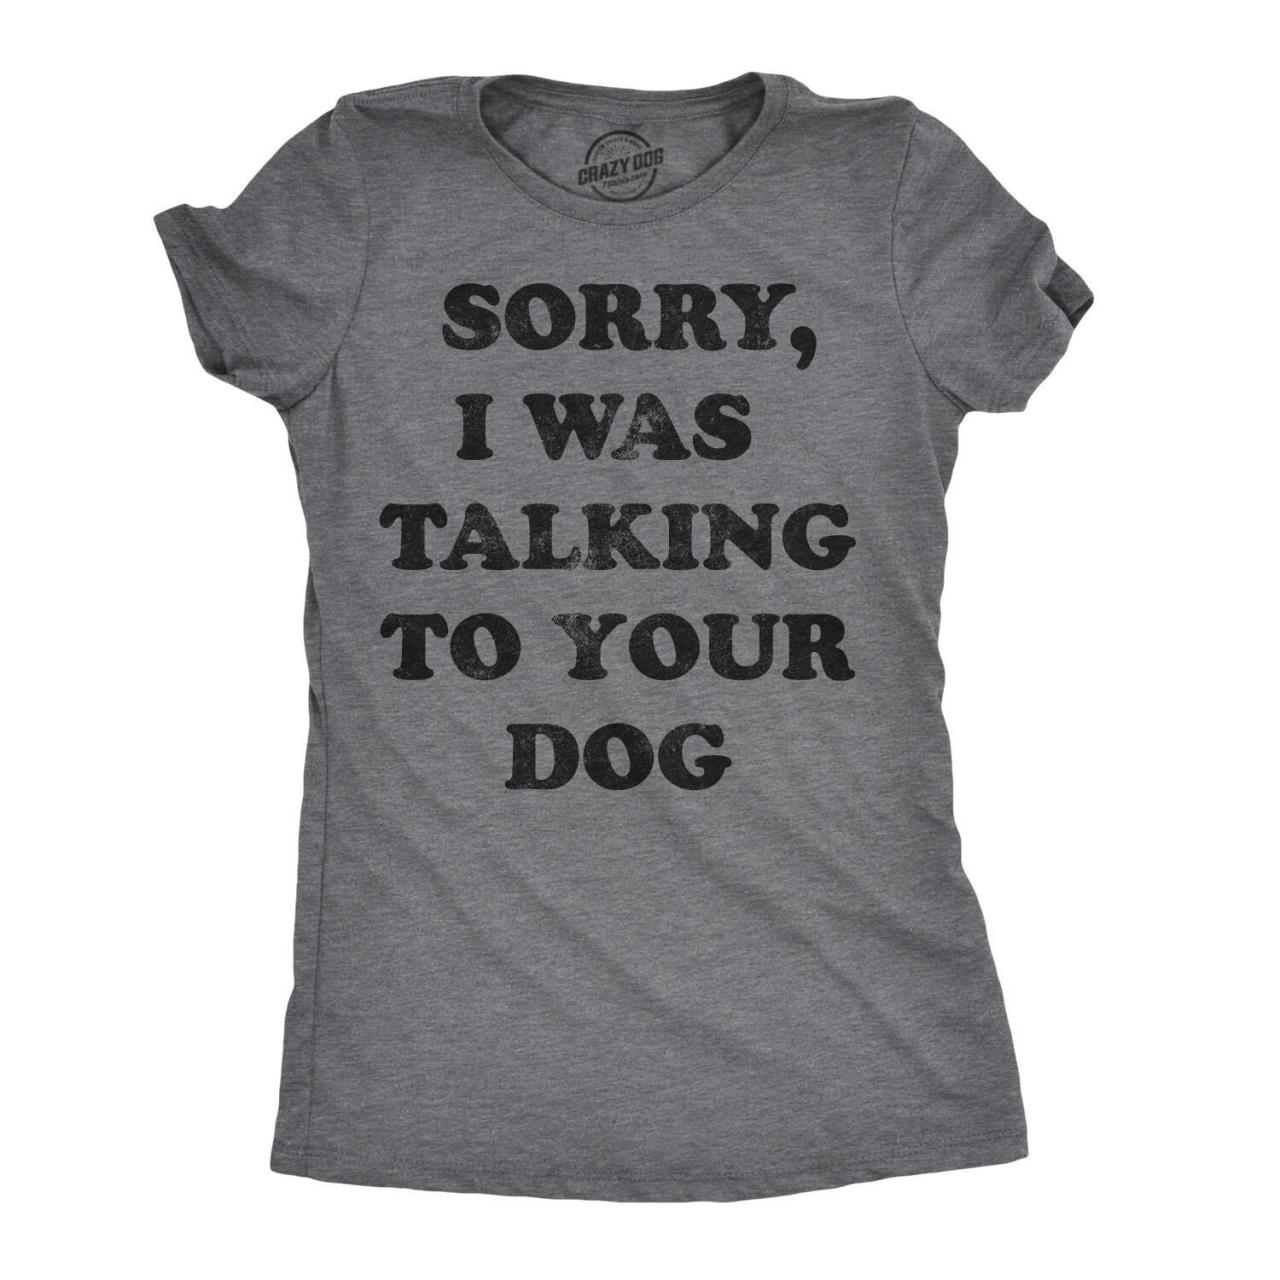 Funny Dog Shirt, Dog Mom Joke Shirt, Womens Dog T shirt, Gift for Dog Lovers, Sorry I Was Talking To Your Dog Shirt